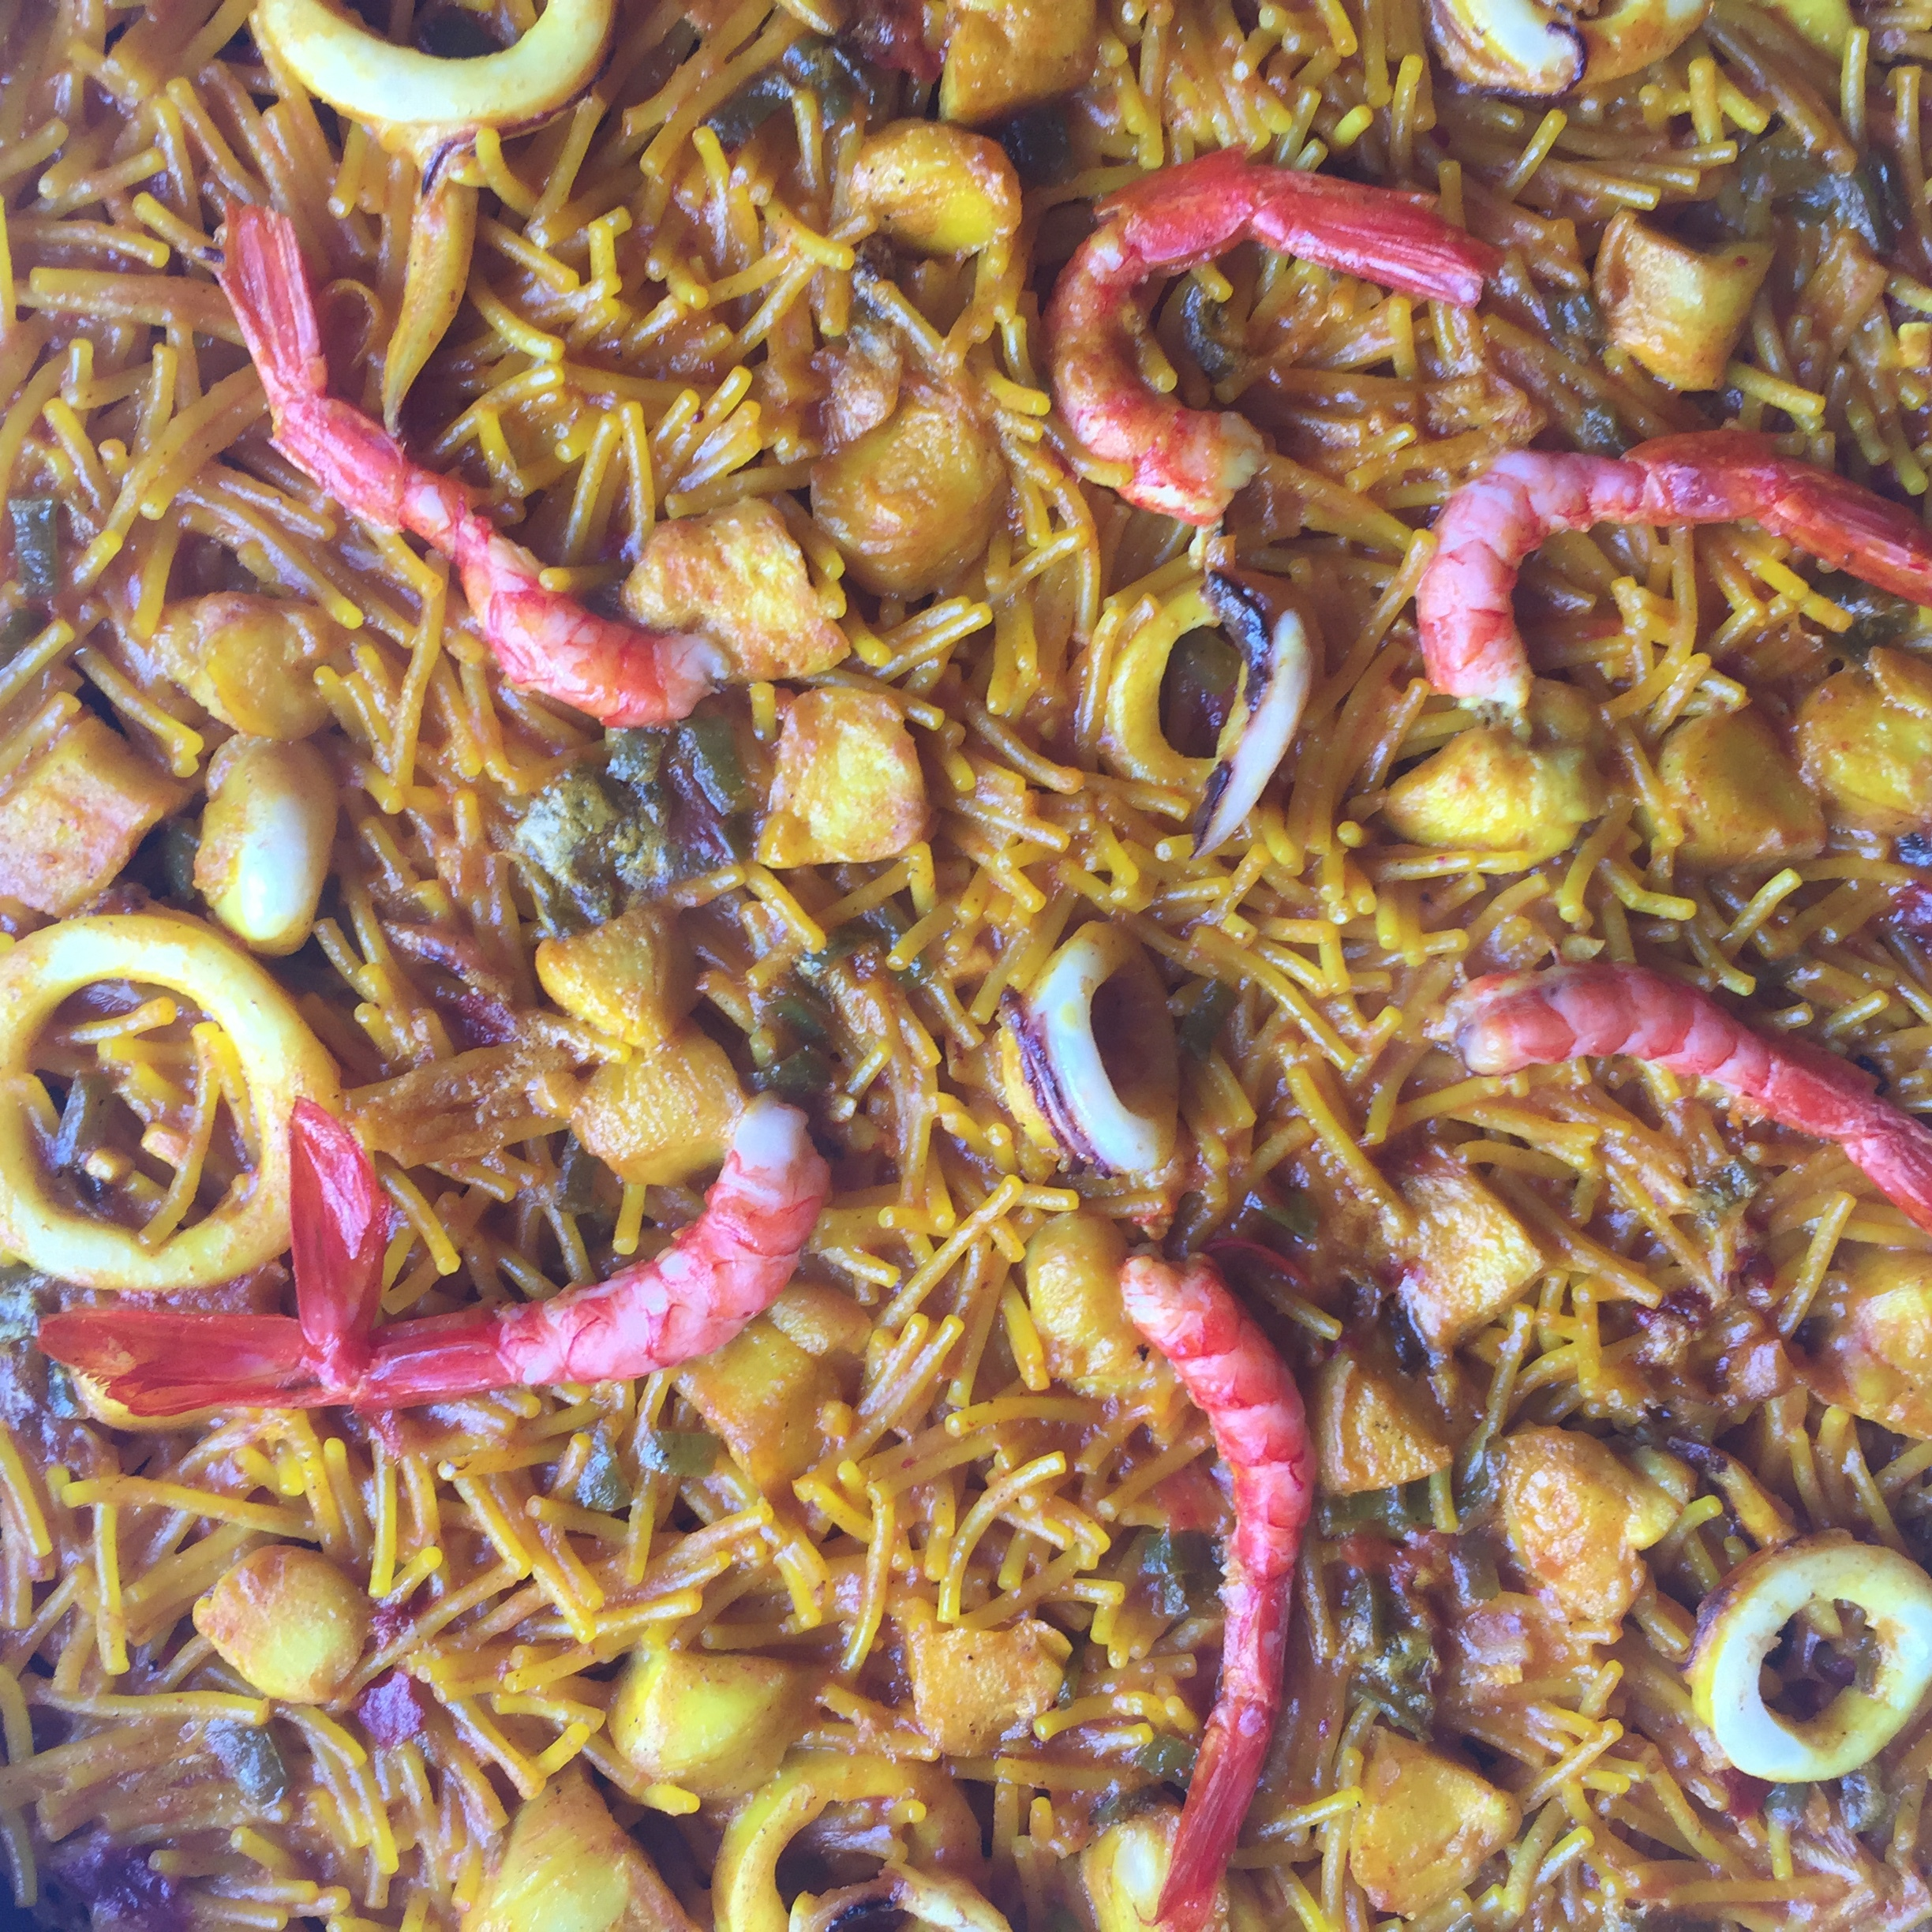 paella best paella catering ibiza mejor comida paella en ibiza mejor restaurante de ibiza best restaurant en ibiza best catering service ibiza wedding food option paela to eat ibiza best paella delivery takeaway best service party food BEST.JPG